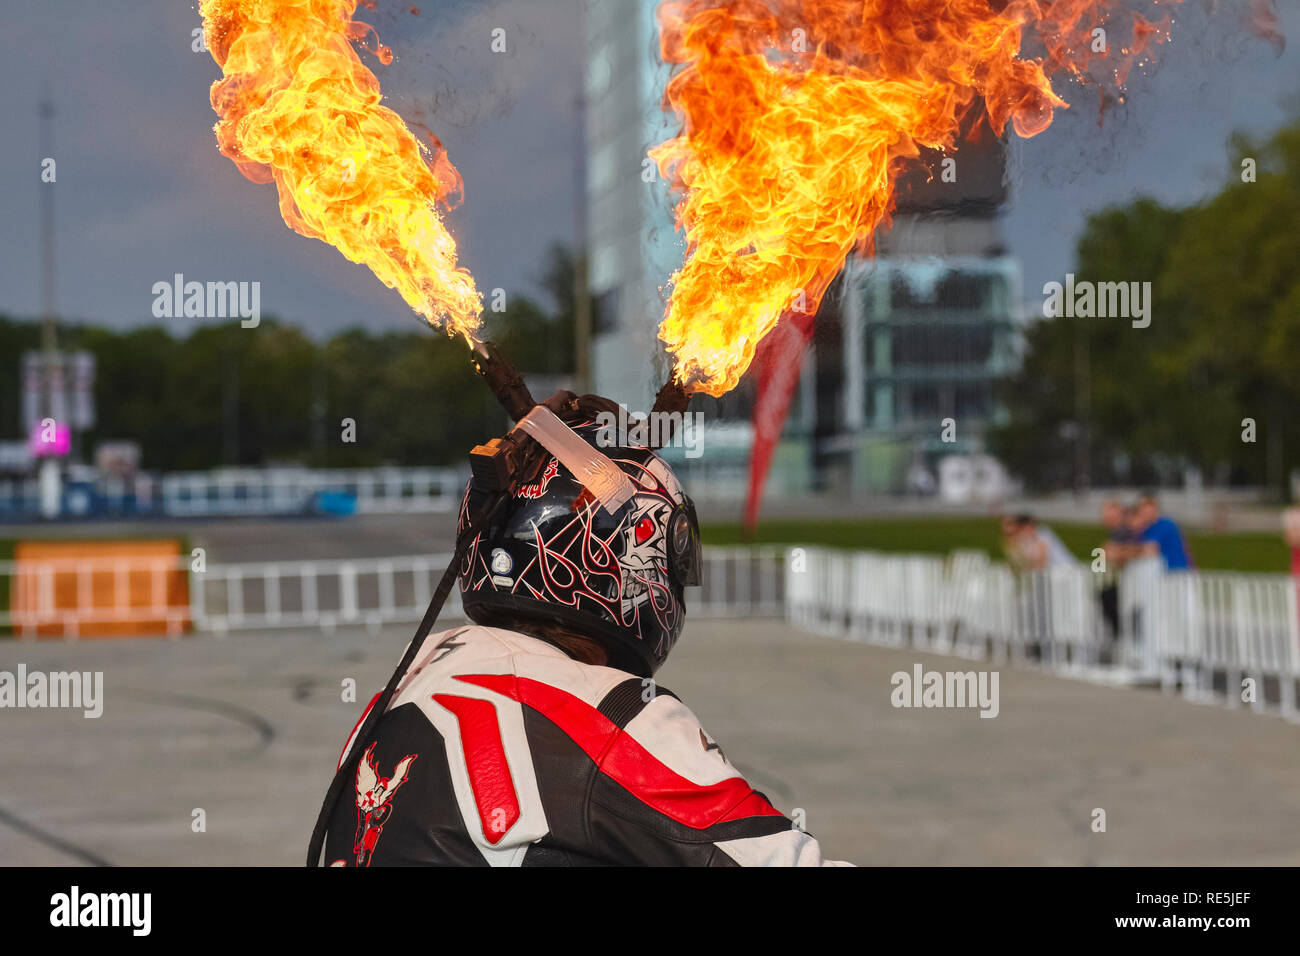 Bucharest, Romania - May 13, 2011: Motorcycle rider Angyal Zoltan wears a special customized helmet to throw fire during hist stunts at the Romanian T - Stock Image